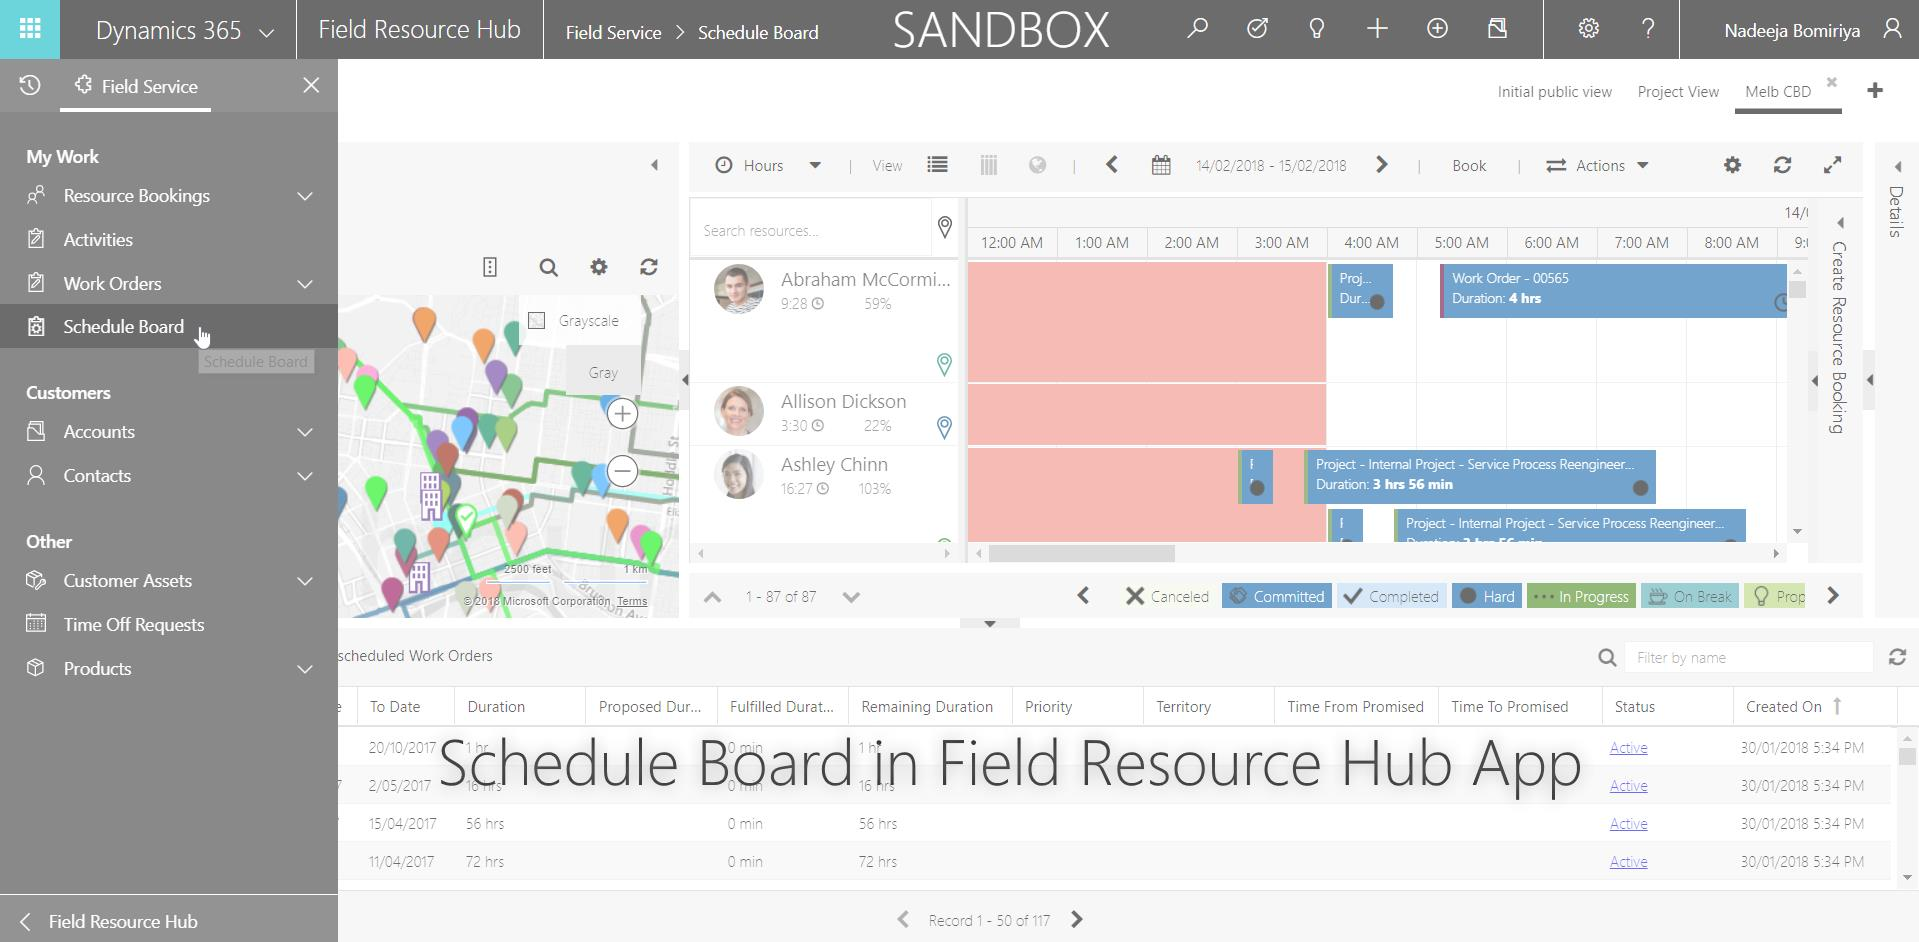 How To - Add Schedule Board to Unified Client Interface (UCI) based Field Resource Hub App